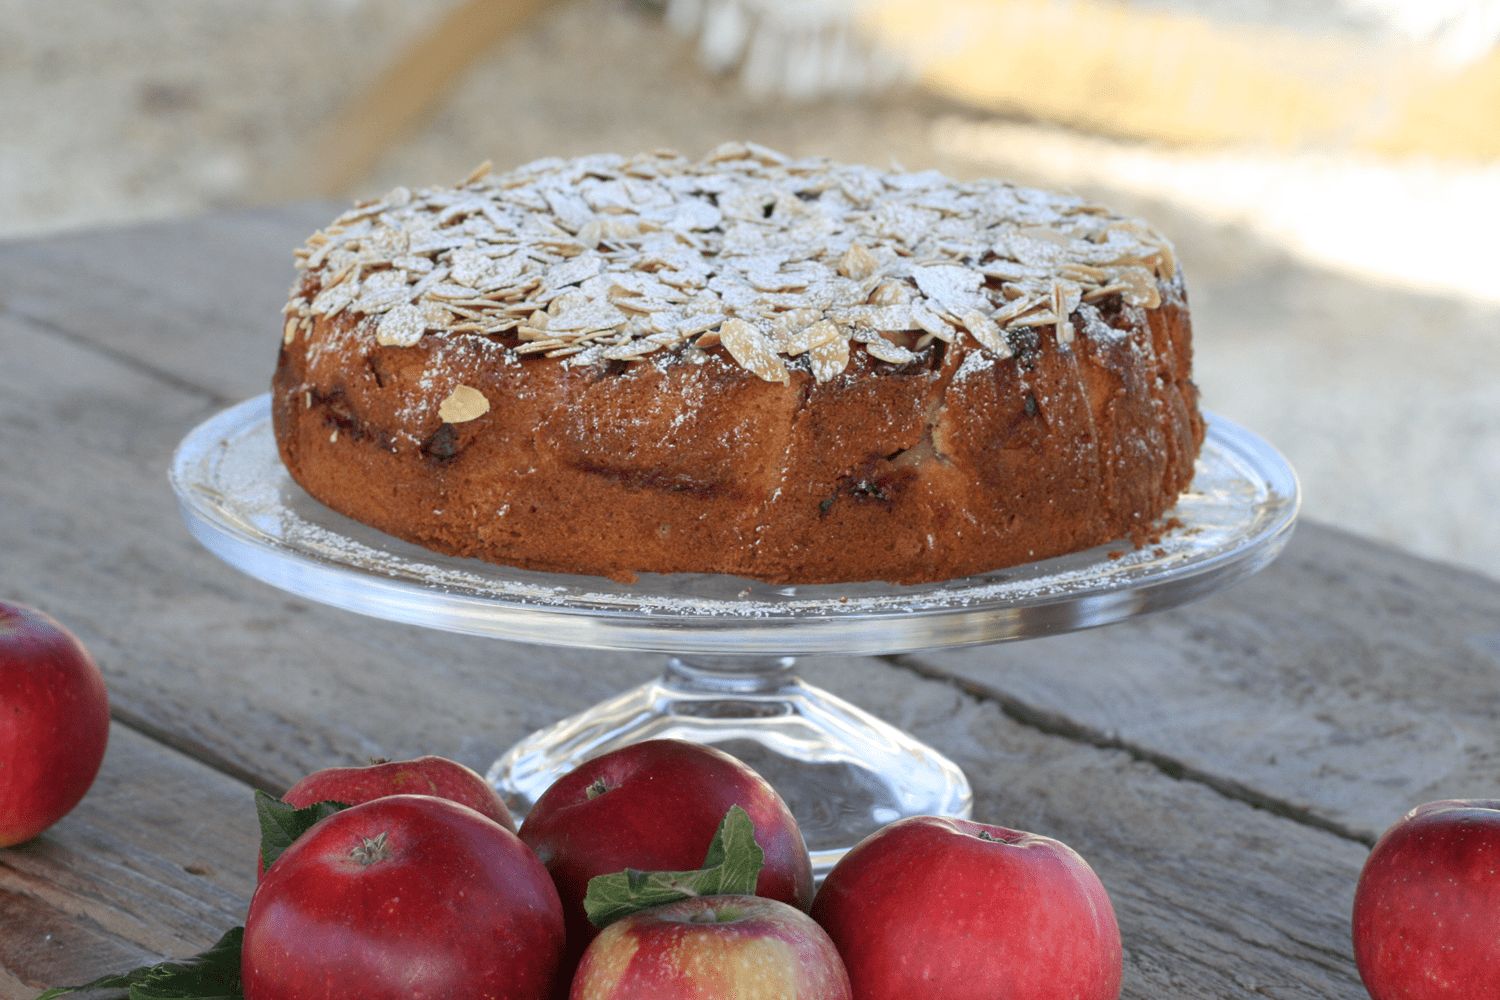 September - Apple & Almond Cake